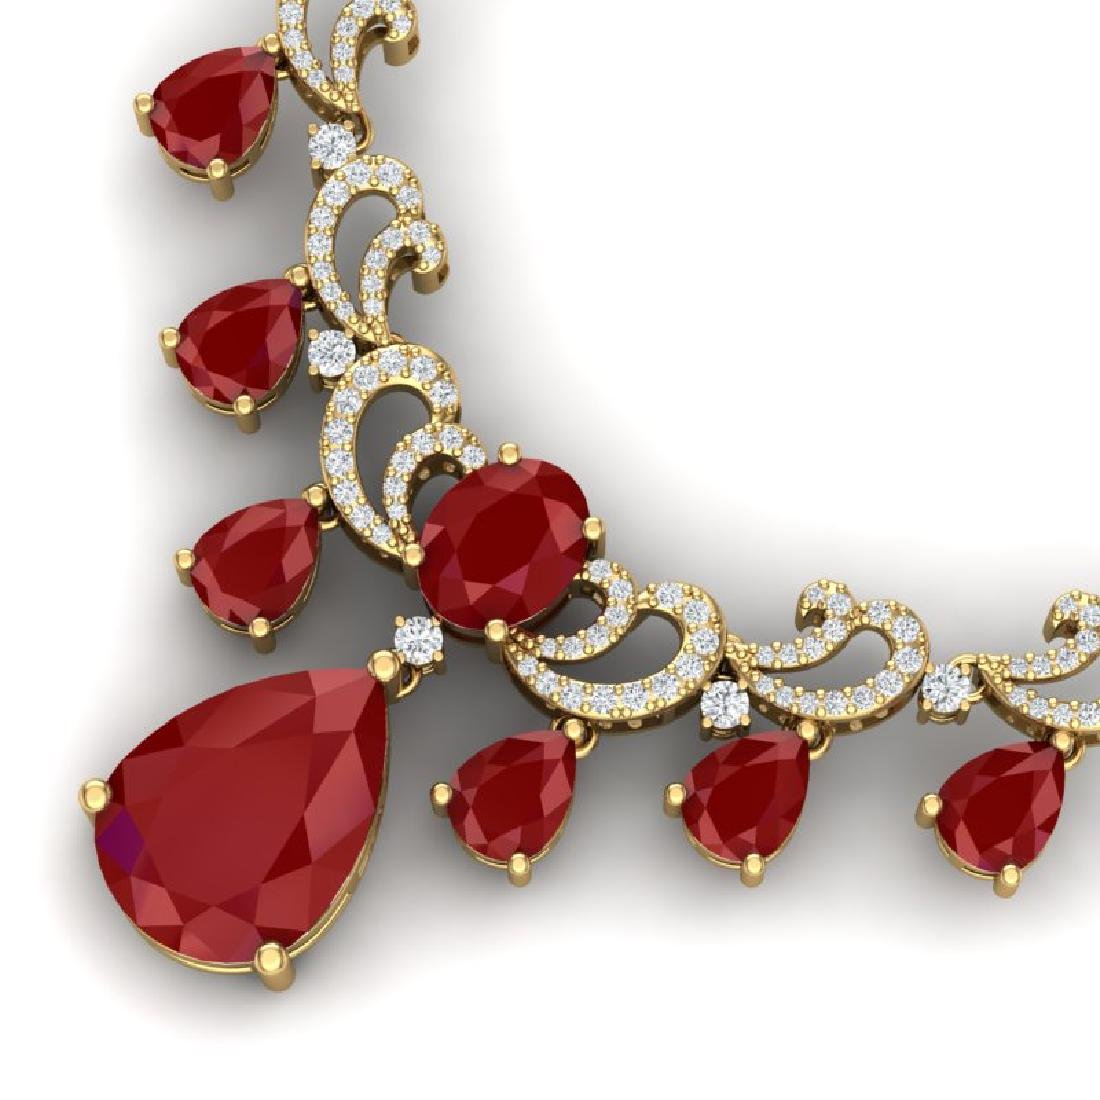 36.85 CTW Royalty Ruby & VS Diamond Necklace 18K Yellow - 2